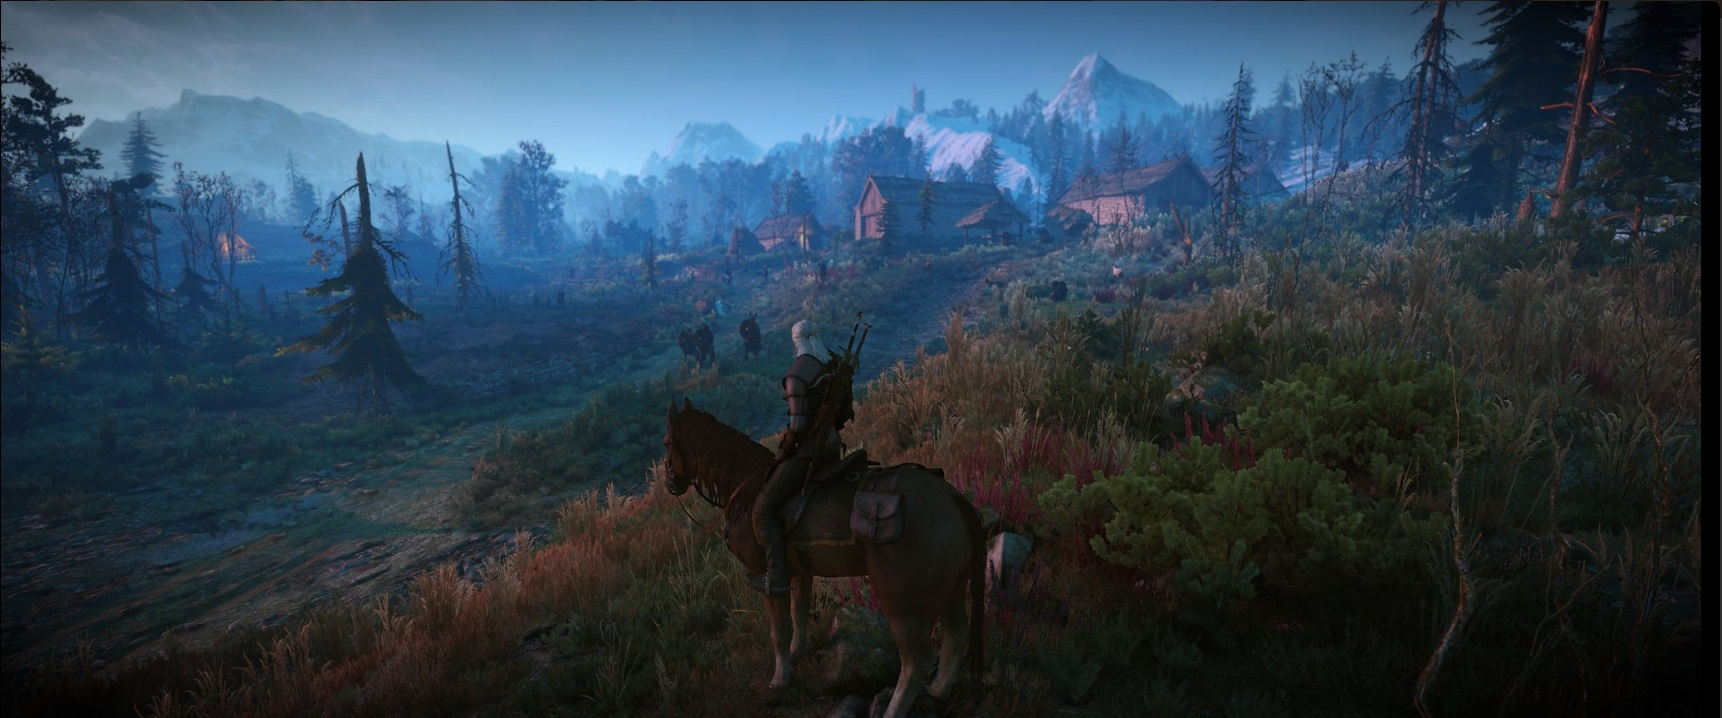 The Witcher 3 Nintendo Switch Has Been Developed In 12